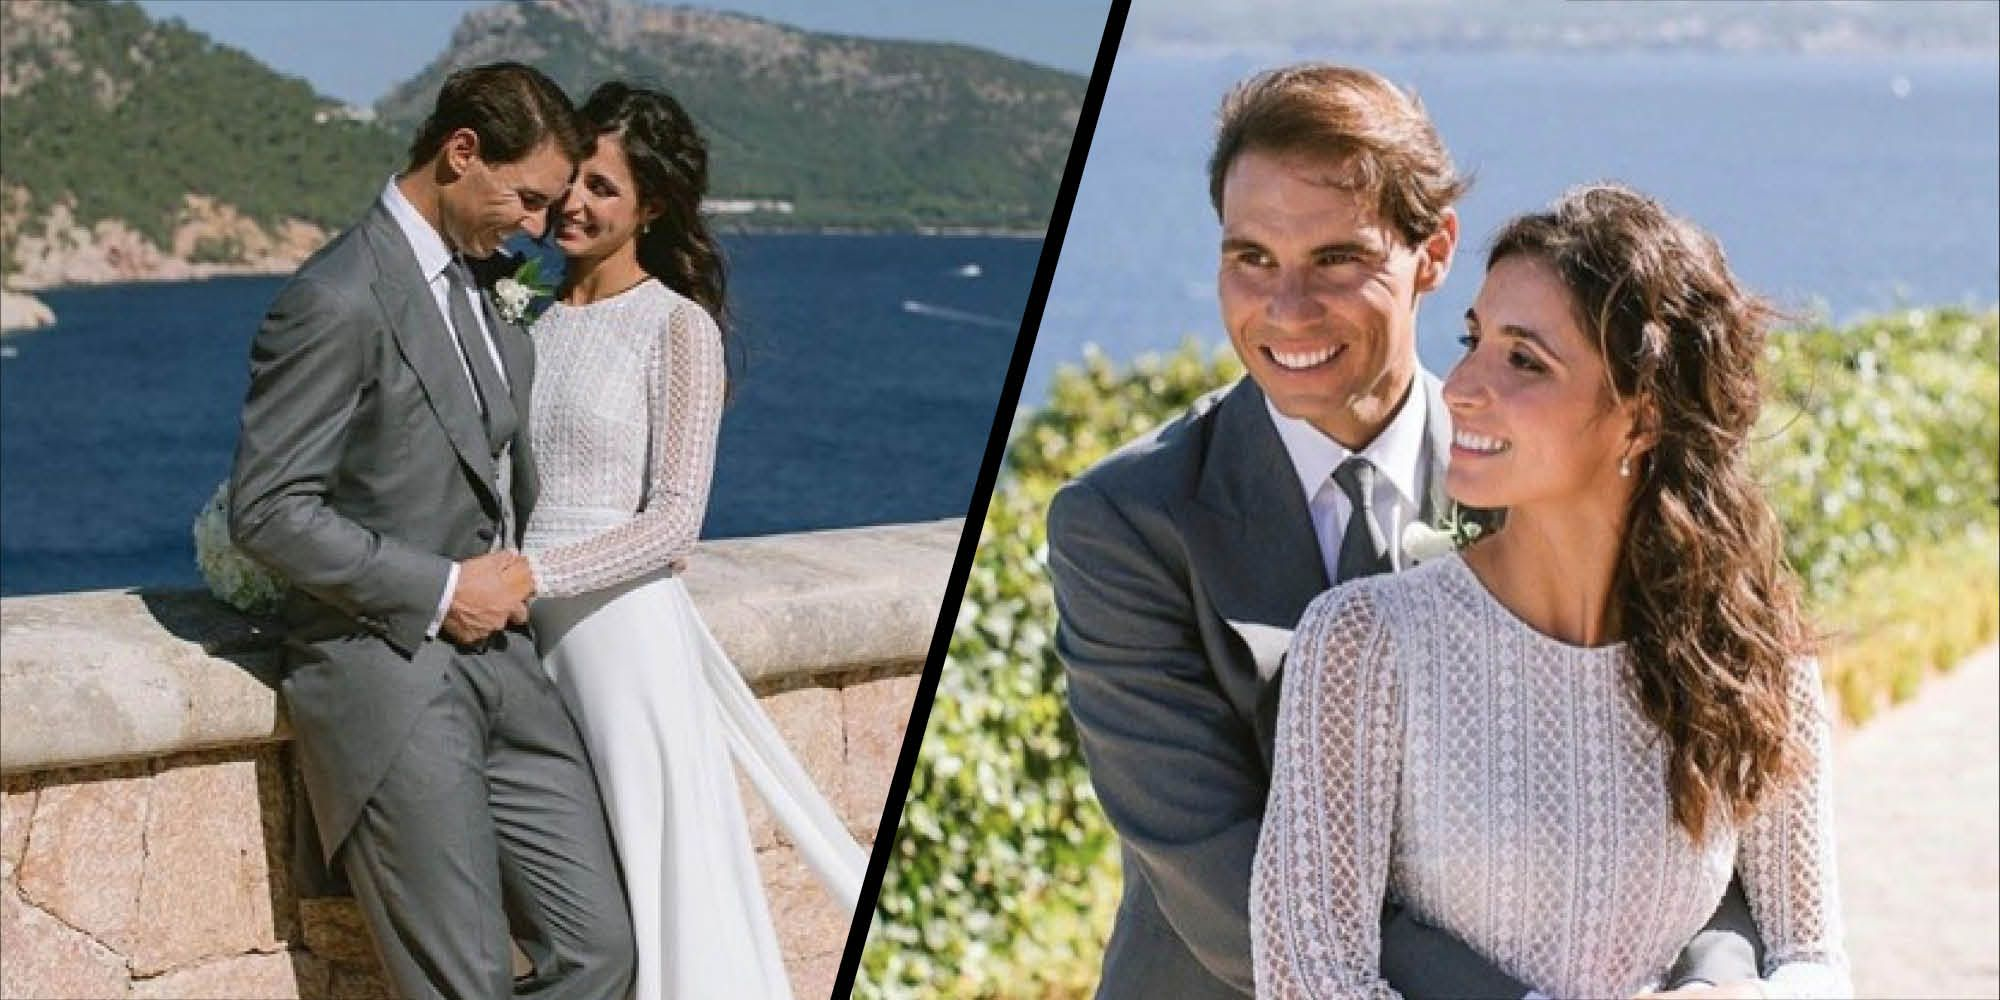 Mery Perello marries Rafa Nadal in two custom-made bridal gowns